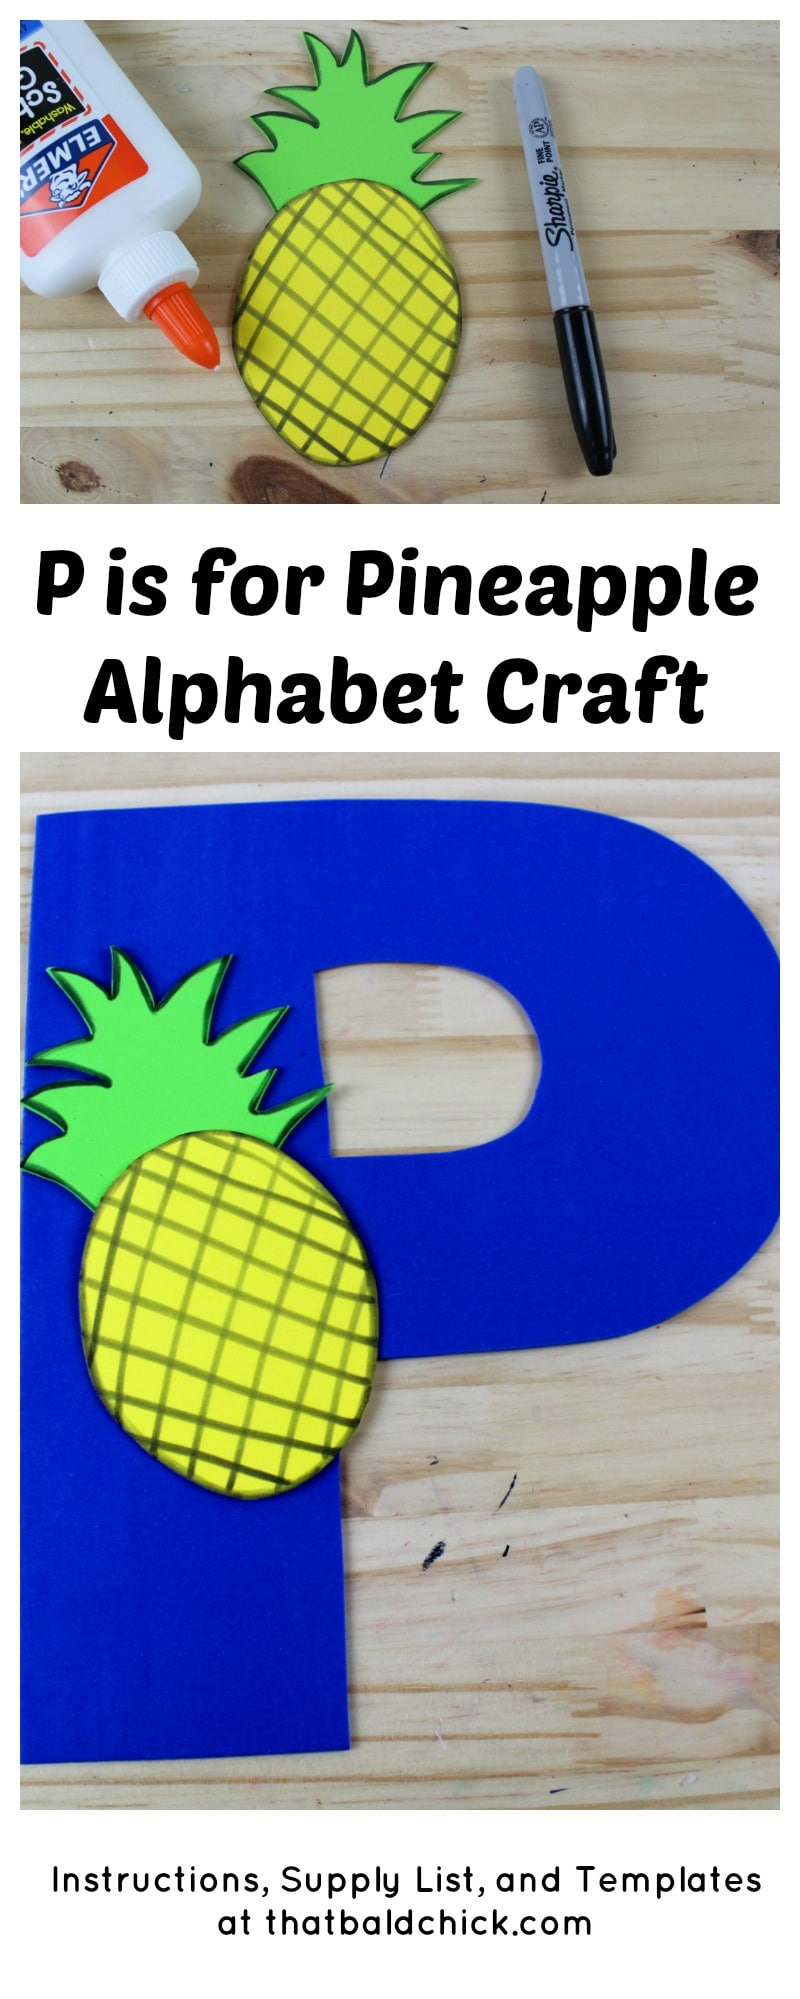 Get the supply list, instructions, and templates for this P is for Pineapple Alphabet Craft today! #homeschool #teacher #alphabet #abcs #lotw #free #printable